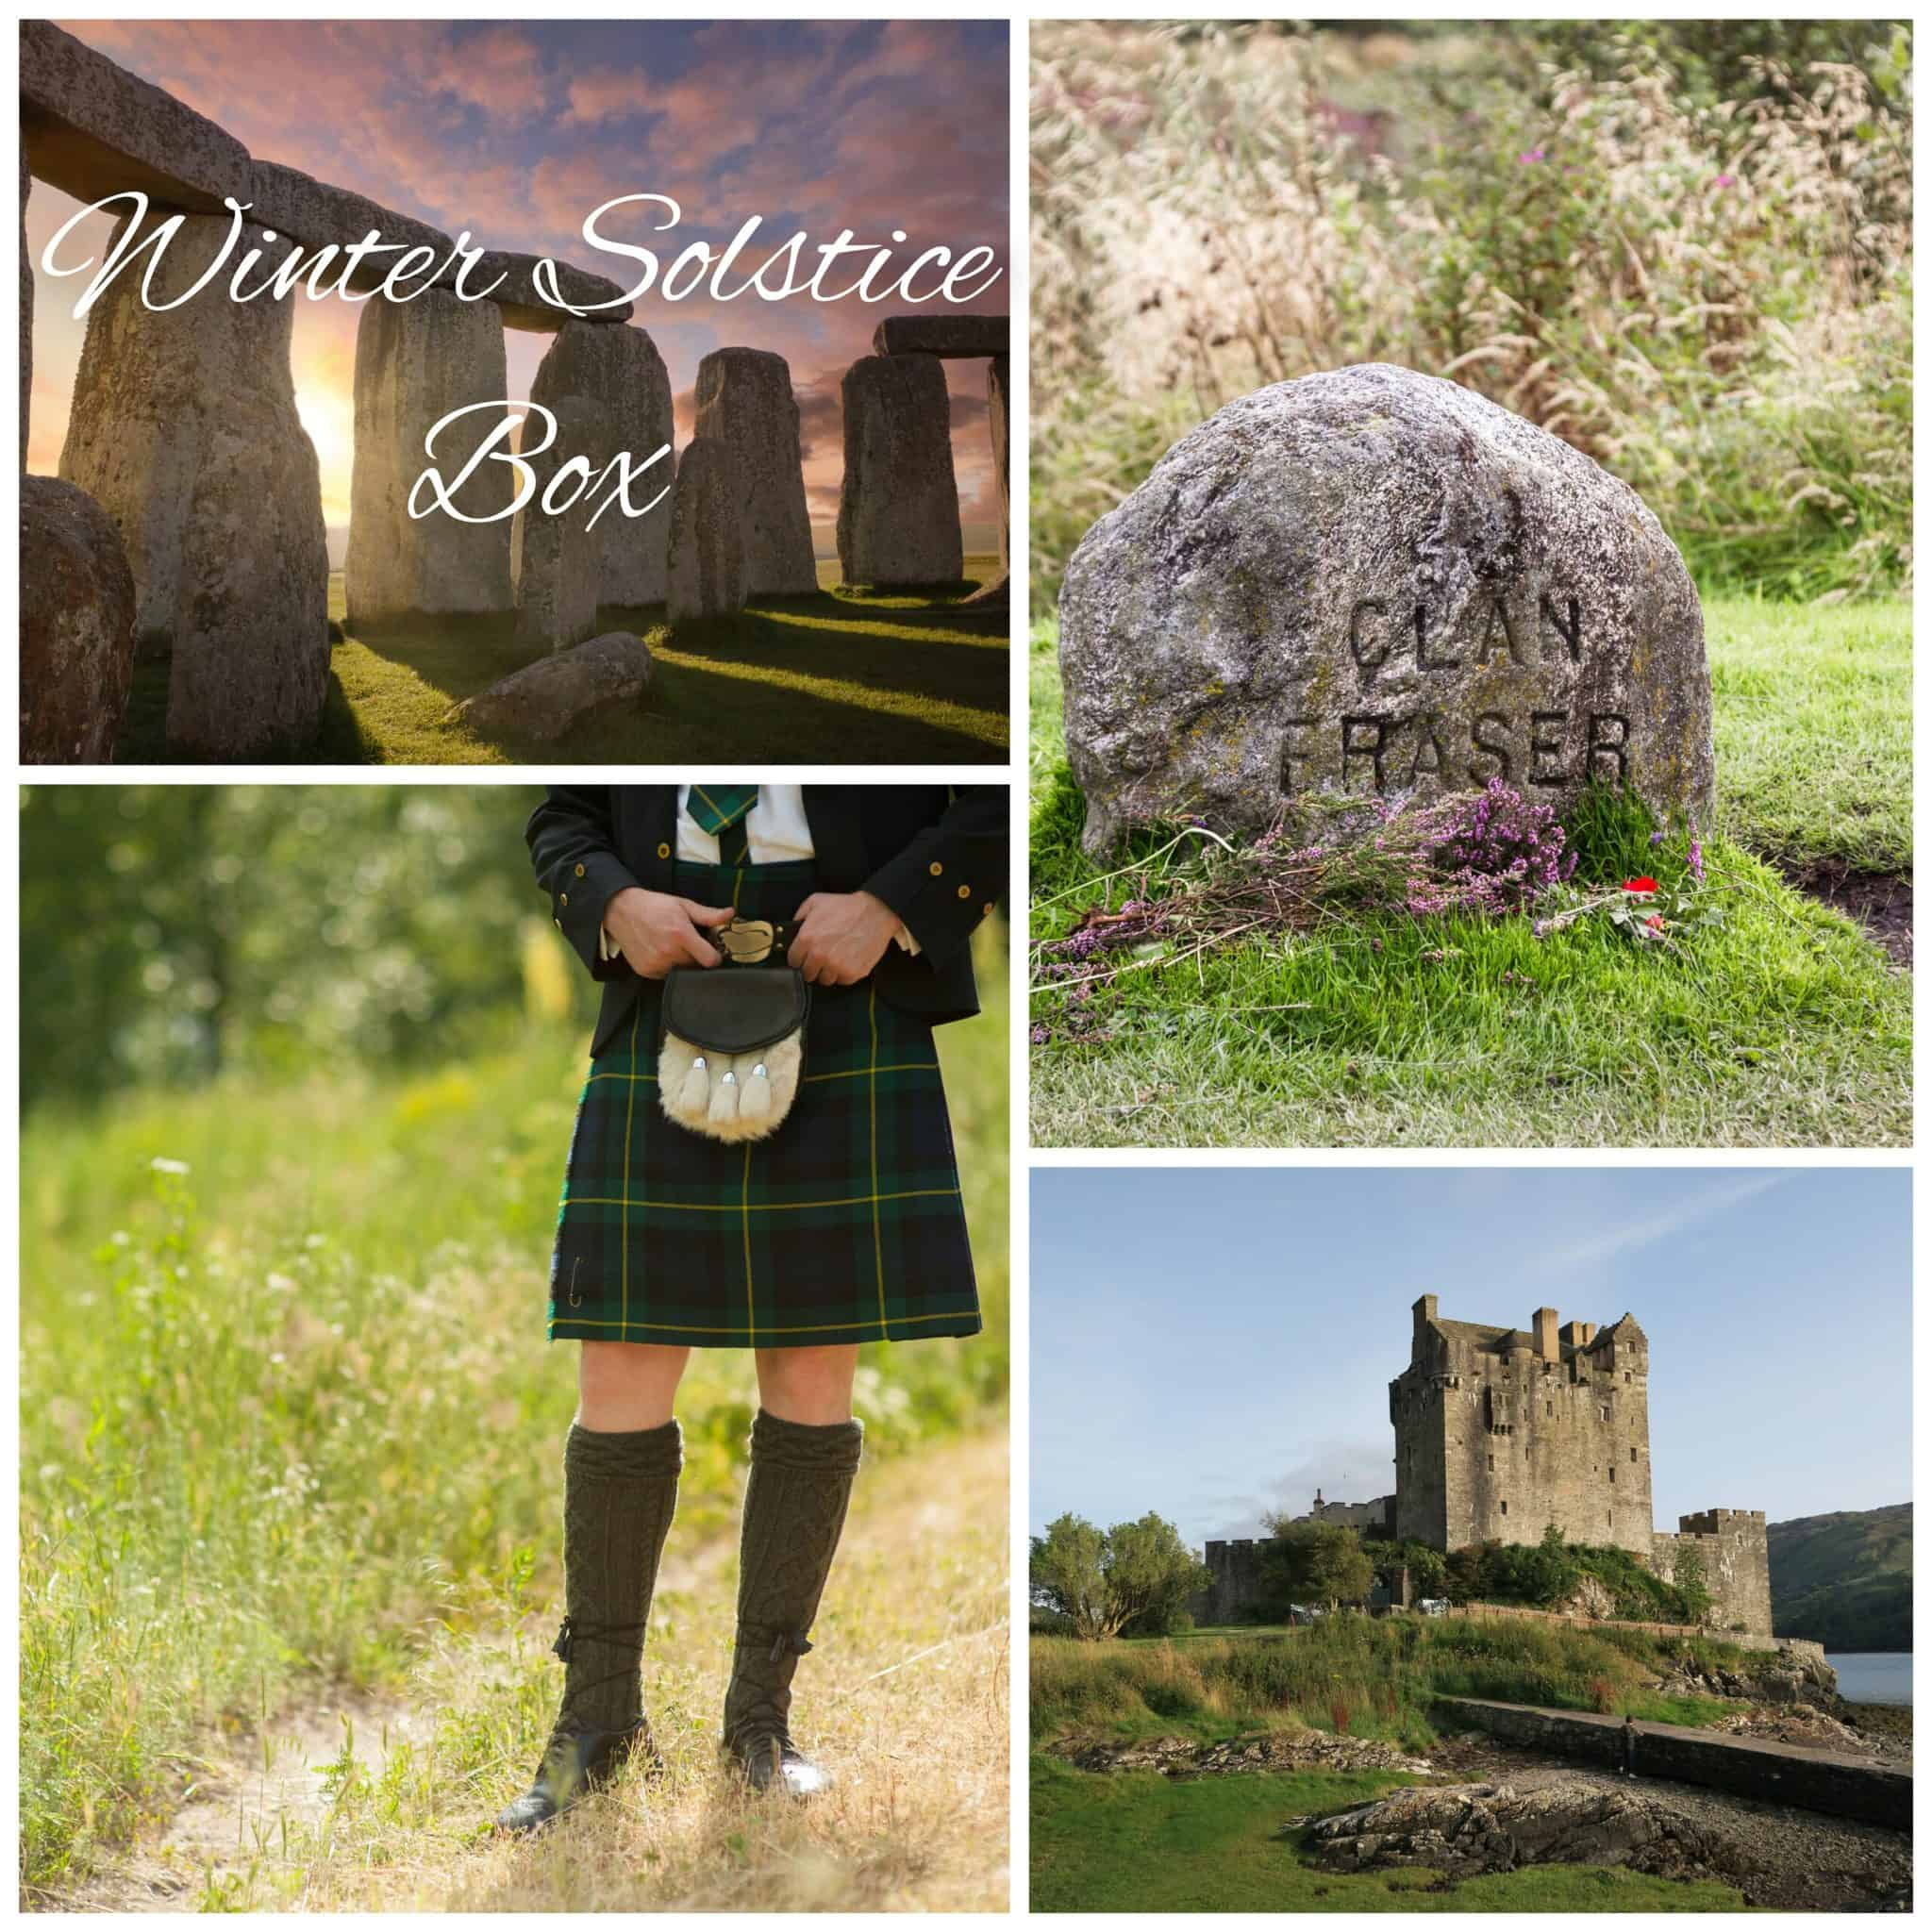 A collage of scenes from Scotland.